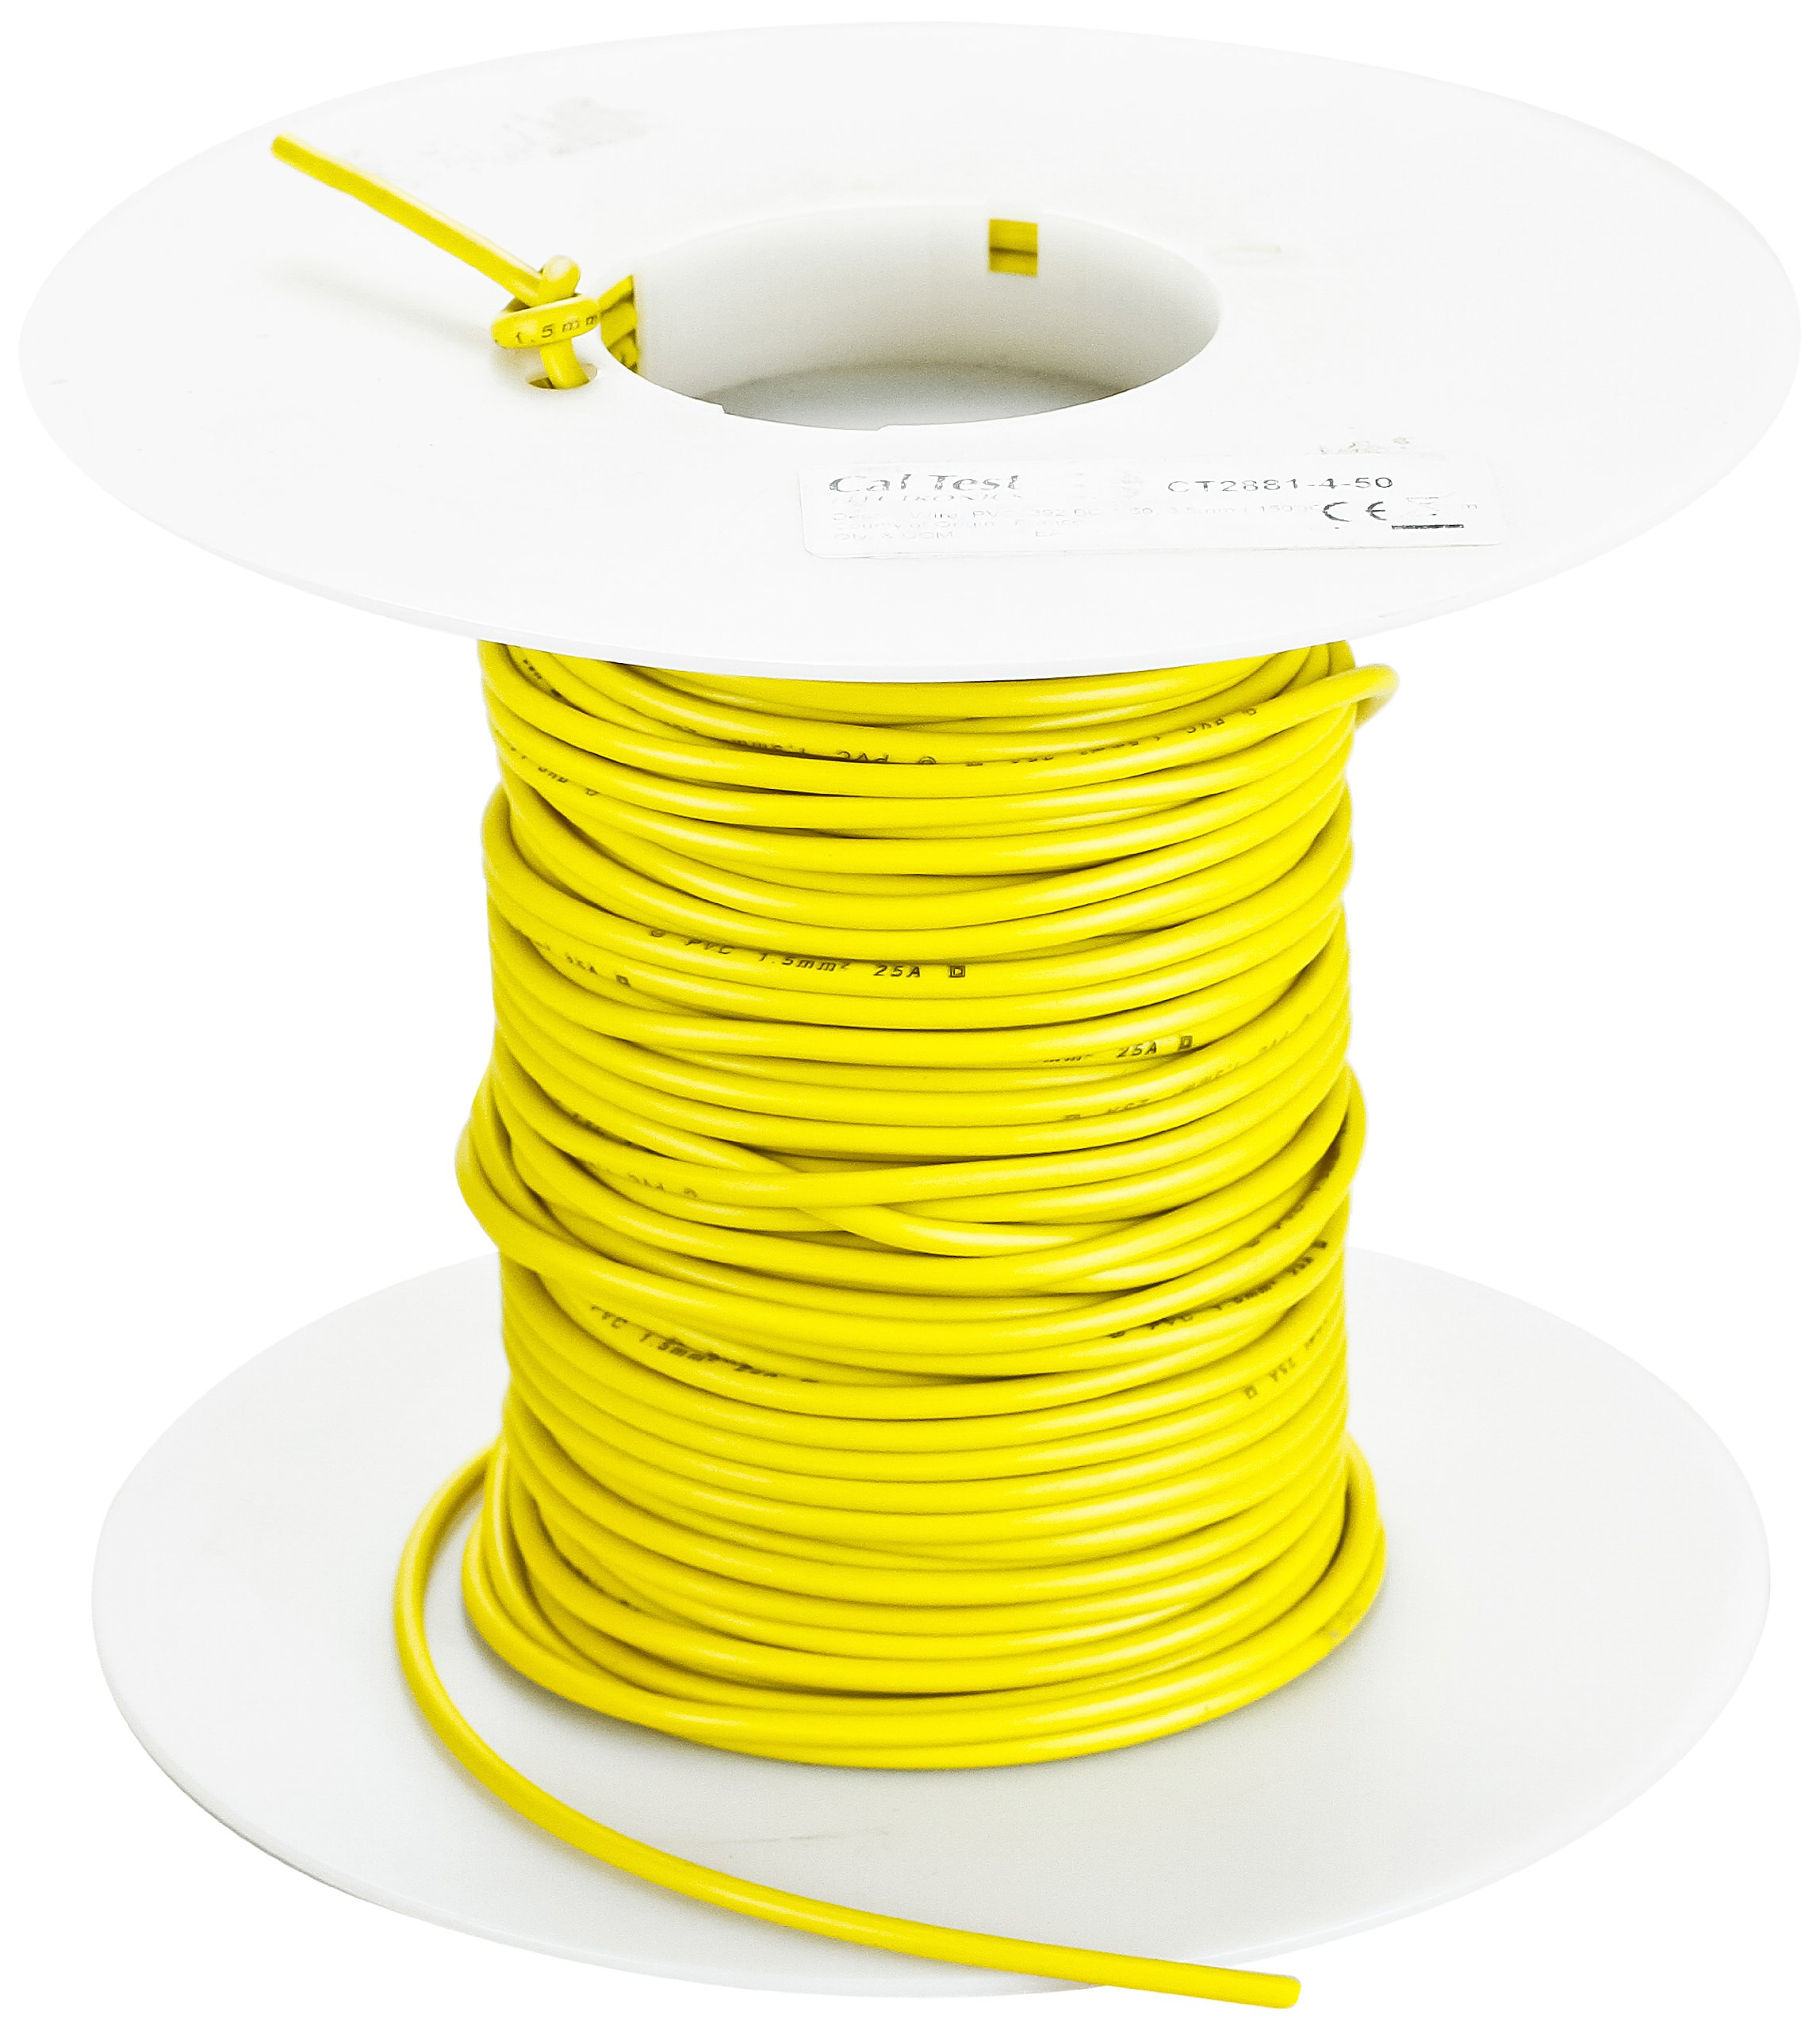 Cal Test Electronics CT2844 Test Lead Wire, 13 AWG, 36 Amp, Silicone Jacket, 2.50 sq mm, 10m Length, Yellow